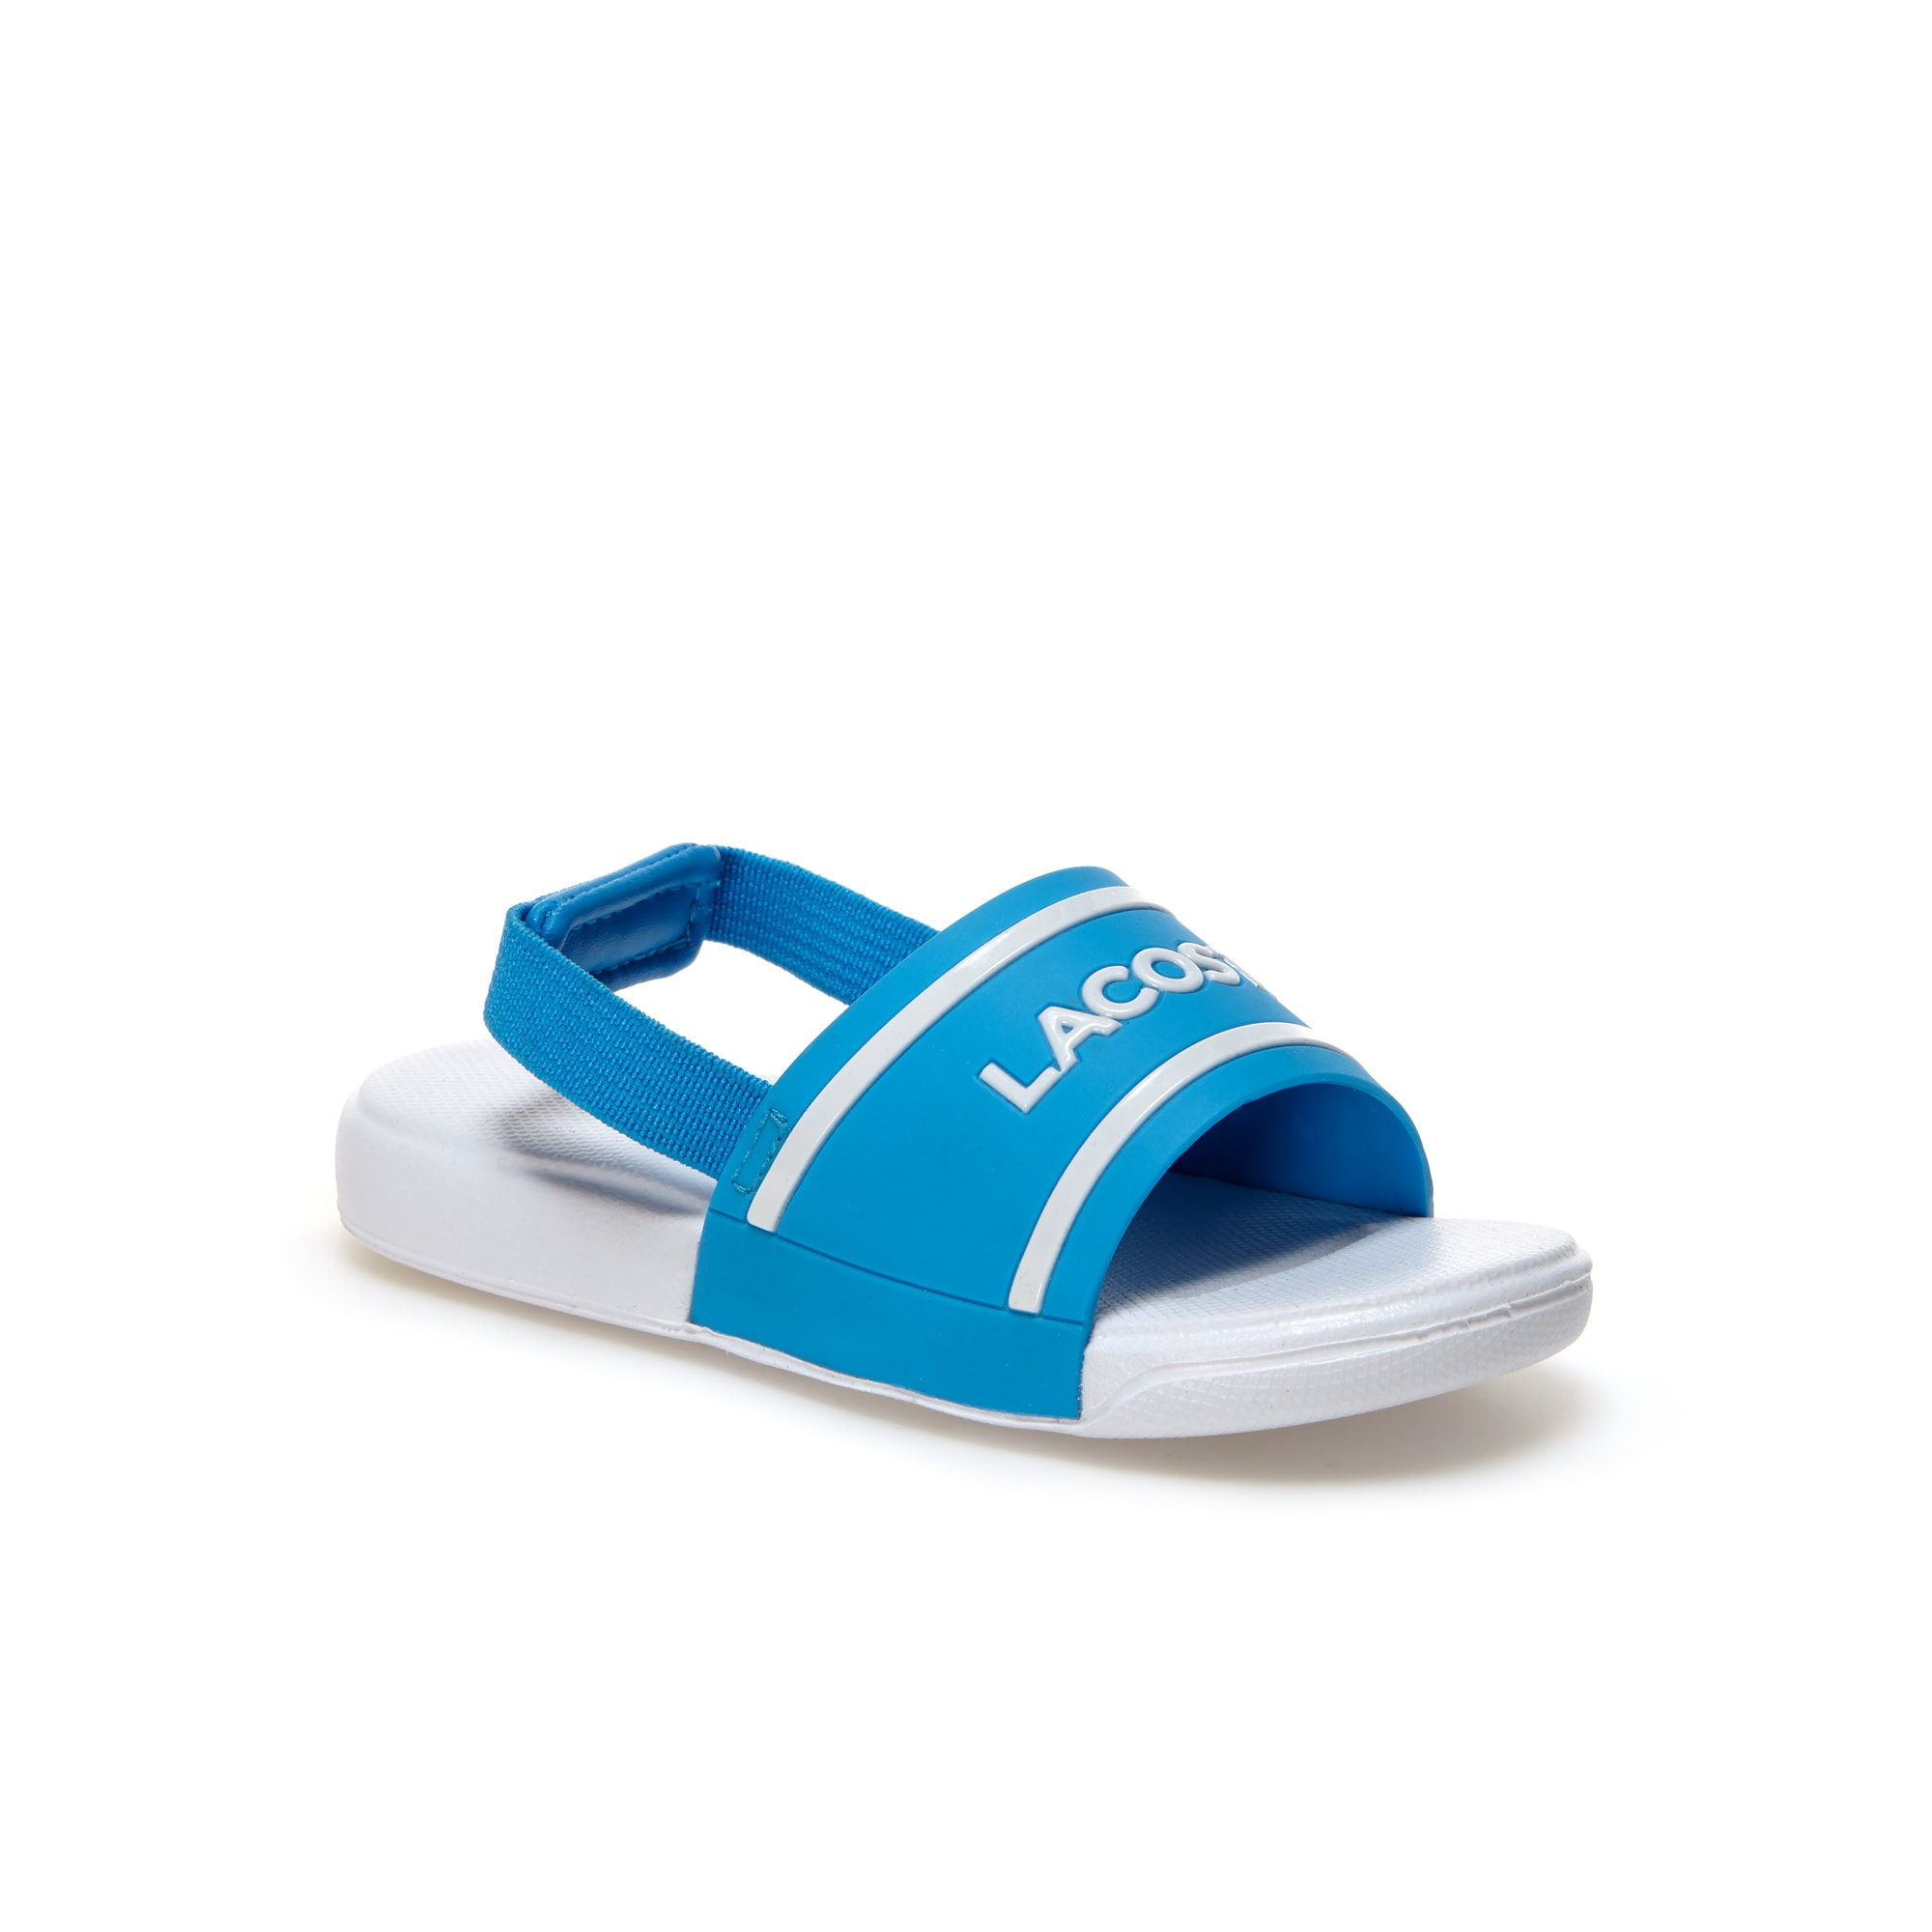 Kids' Synthetic L.30 Slides